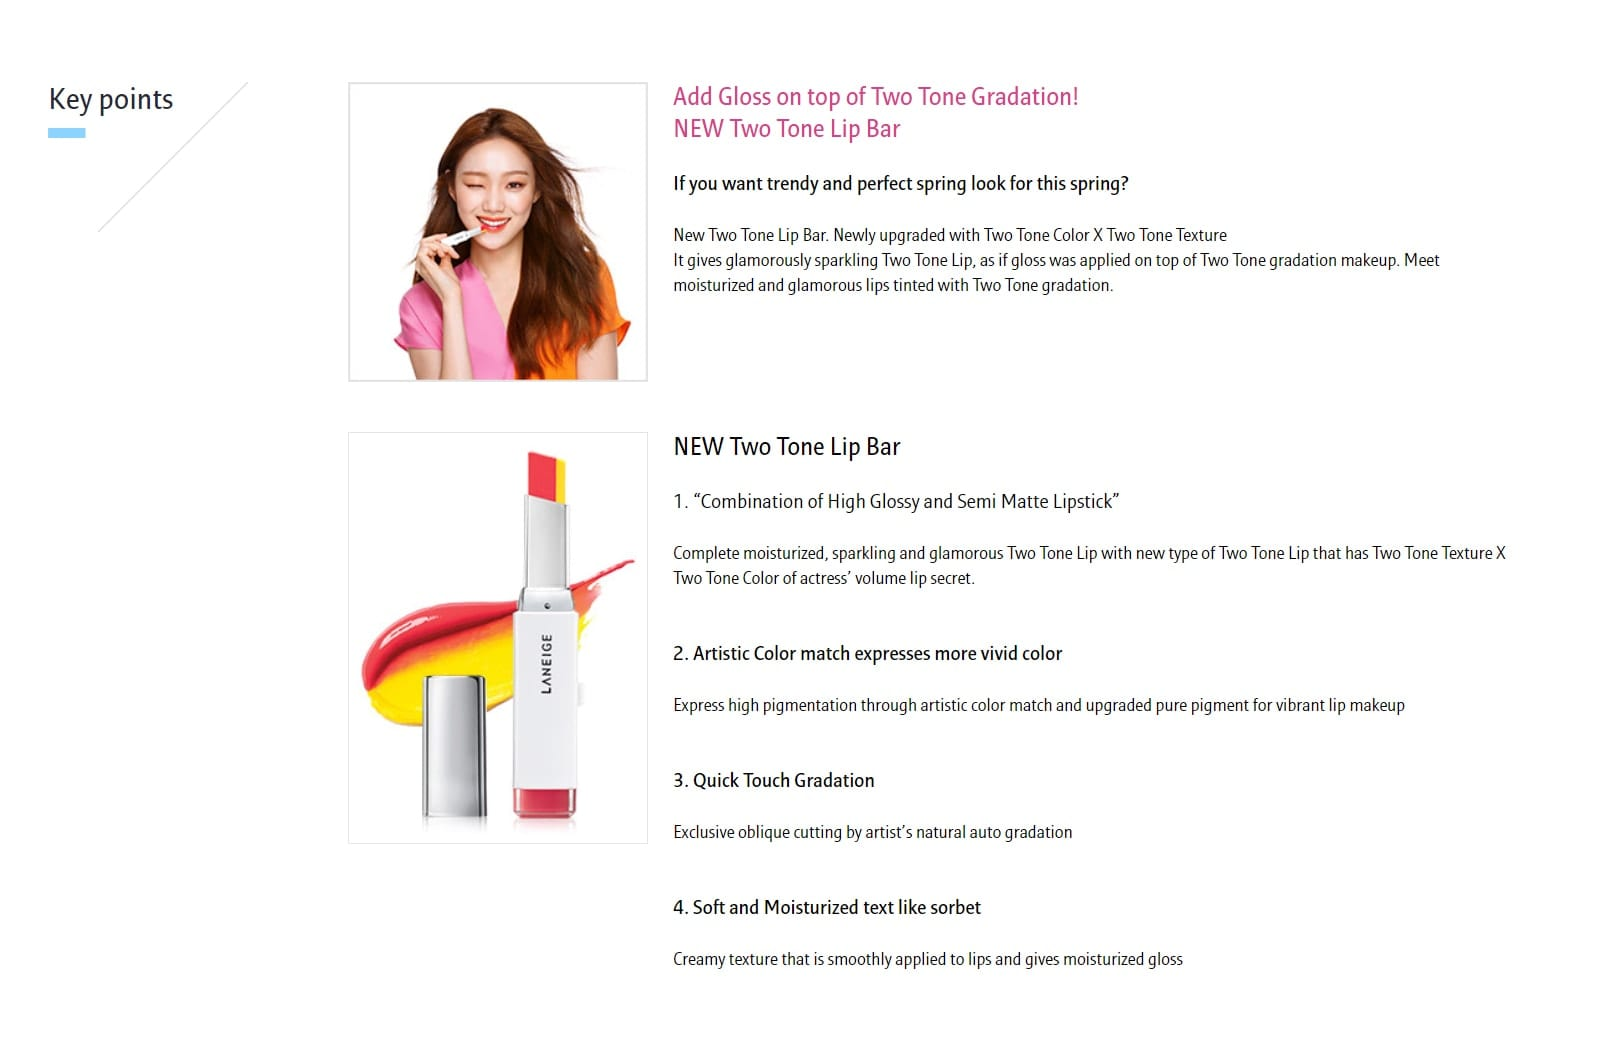 Laneige Two Tone Lip Bar - features